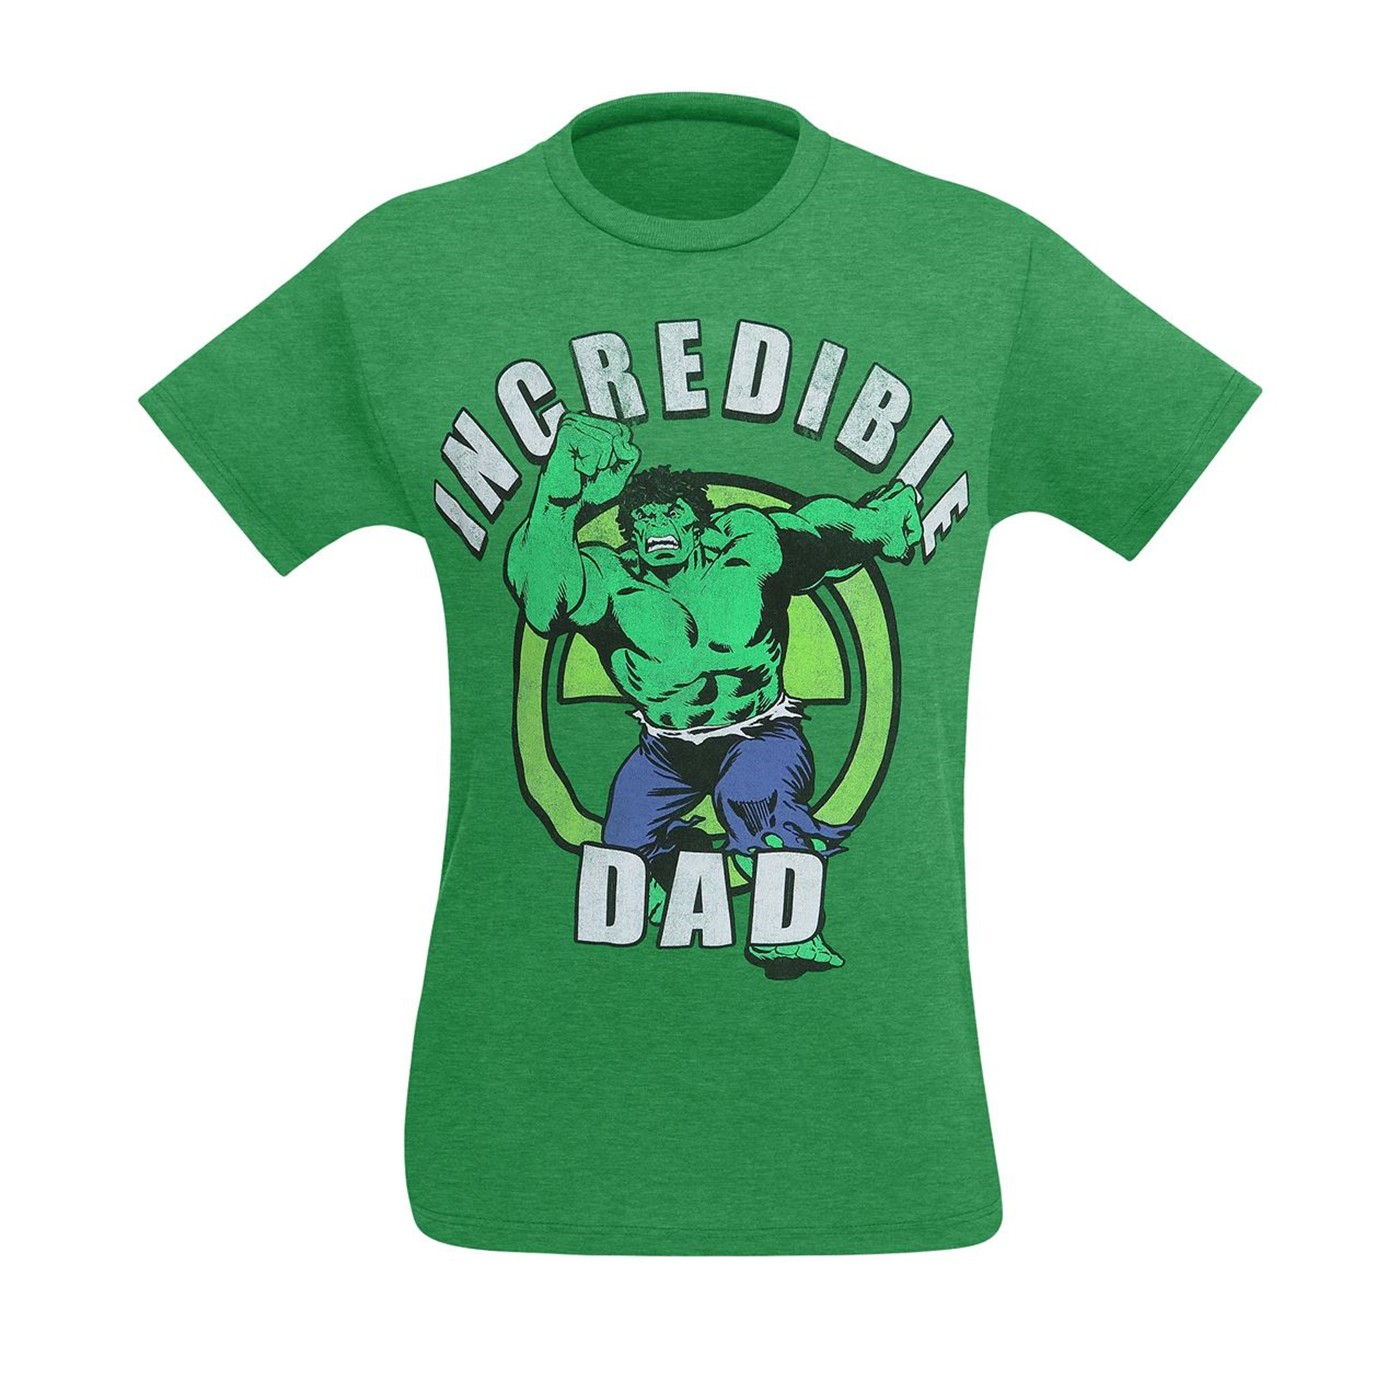 The Hulk Incredible Dad Men's T-Shirt